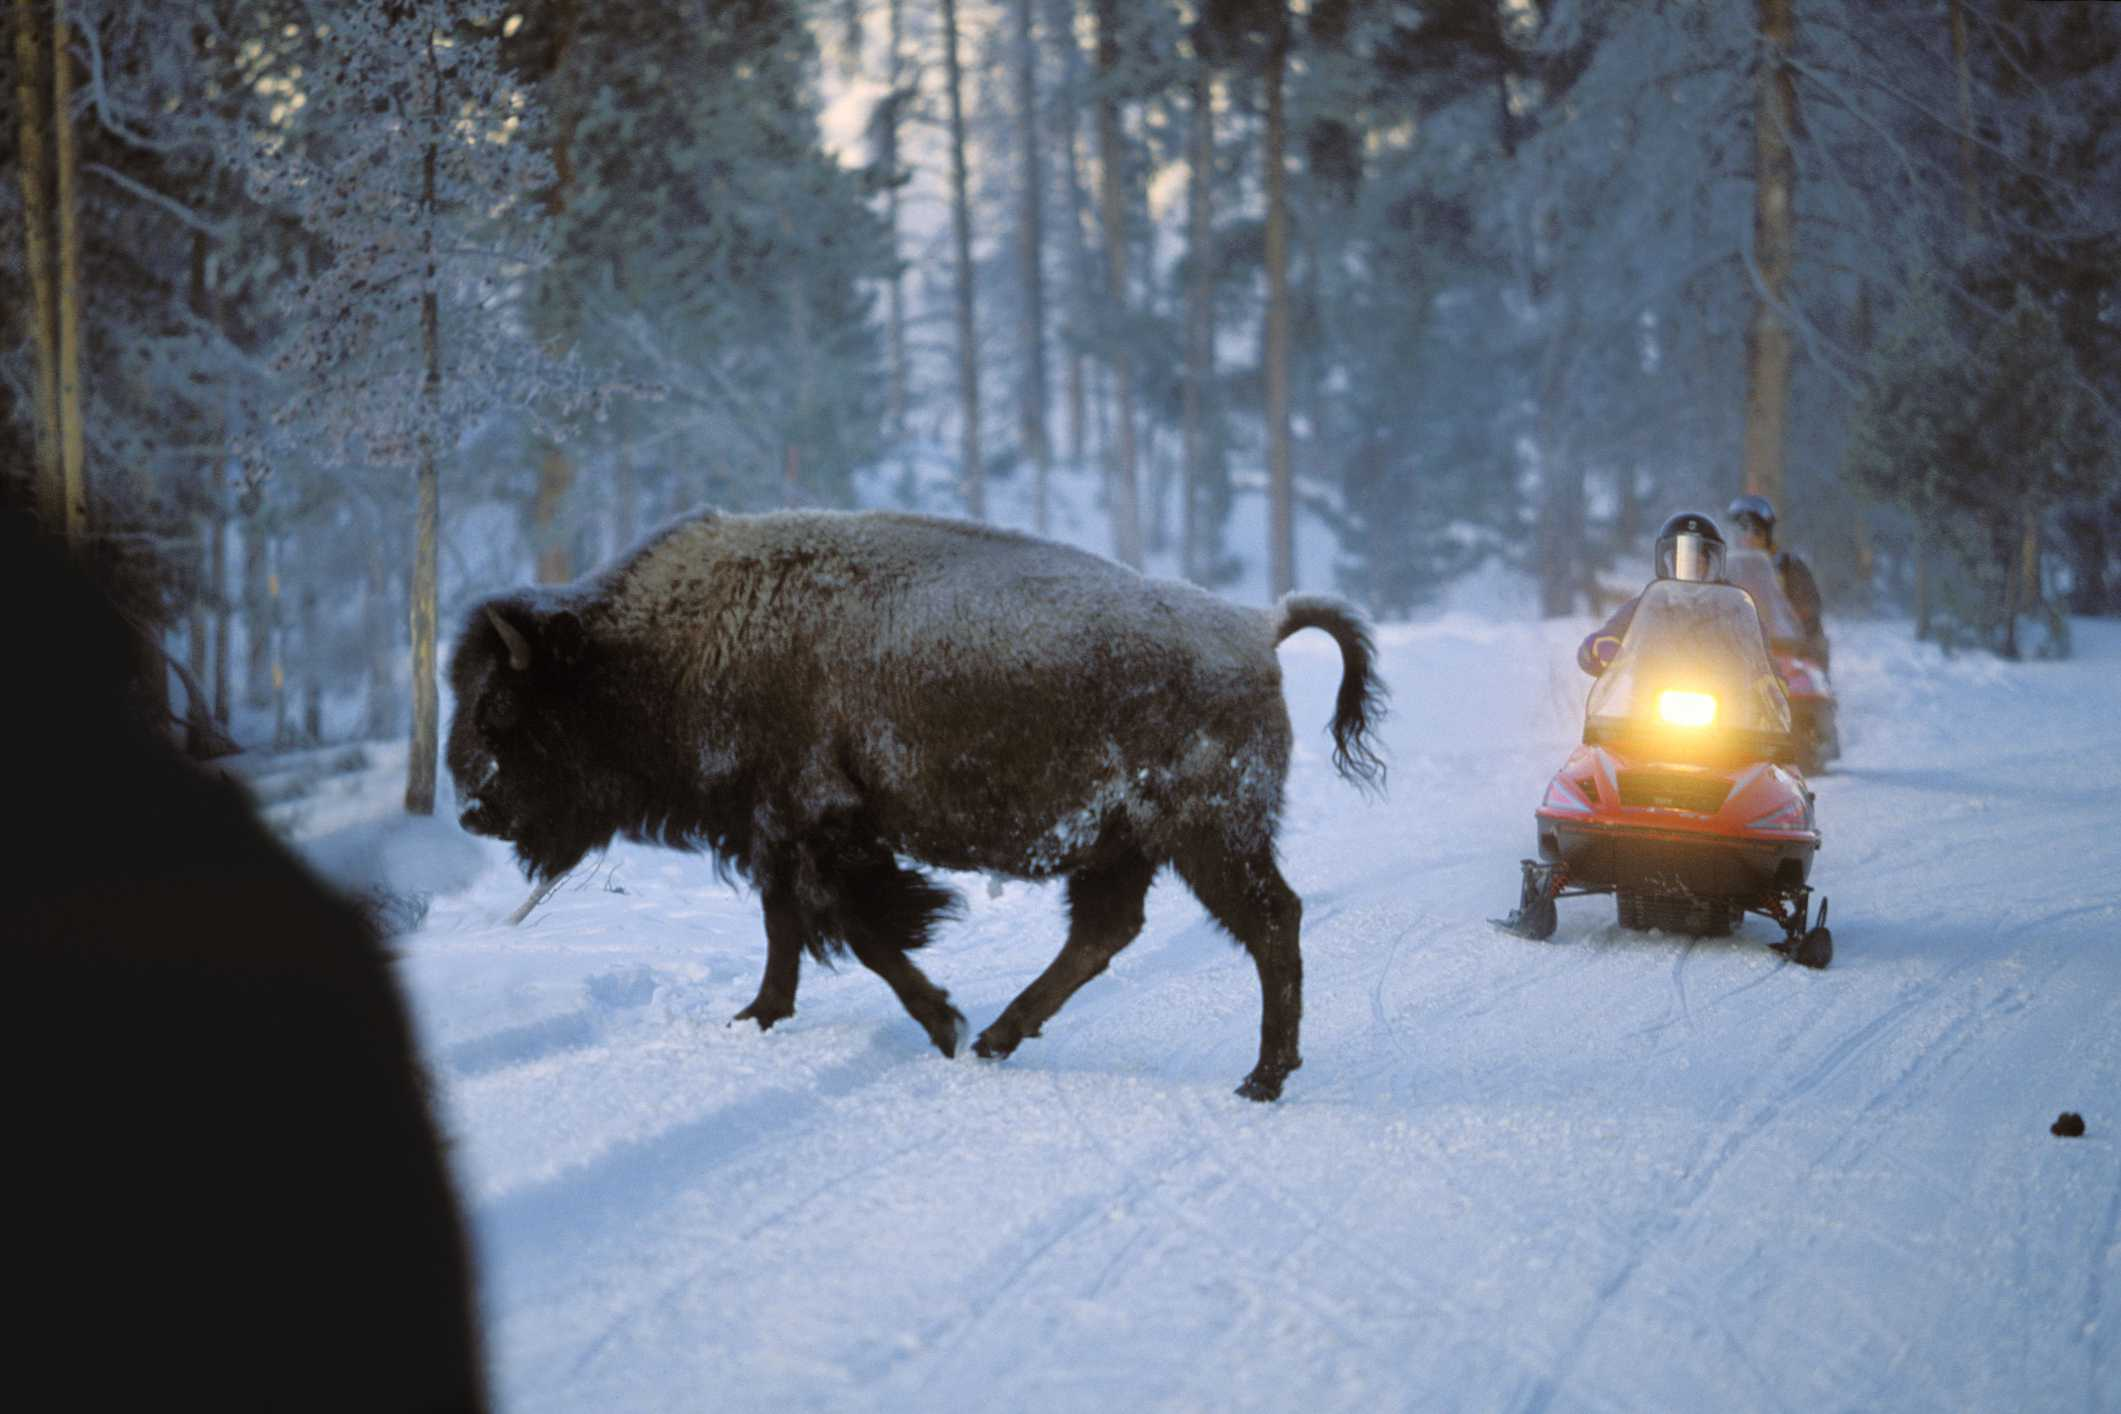 'Bison crossing road in front of snowmobile, Yellowstone National Park, Wyoming, USA, America'